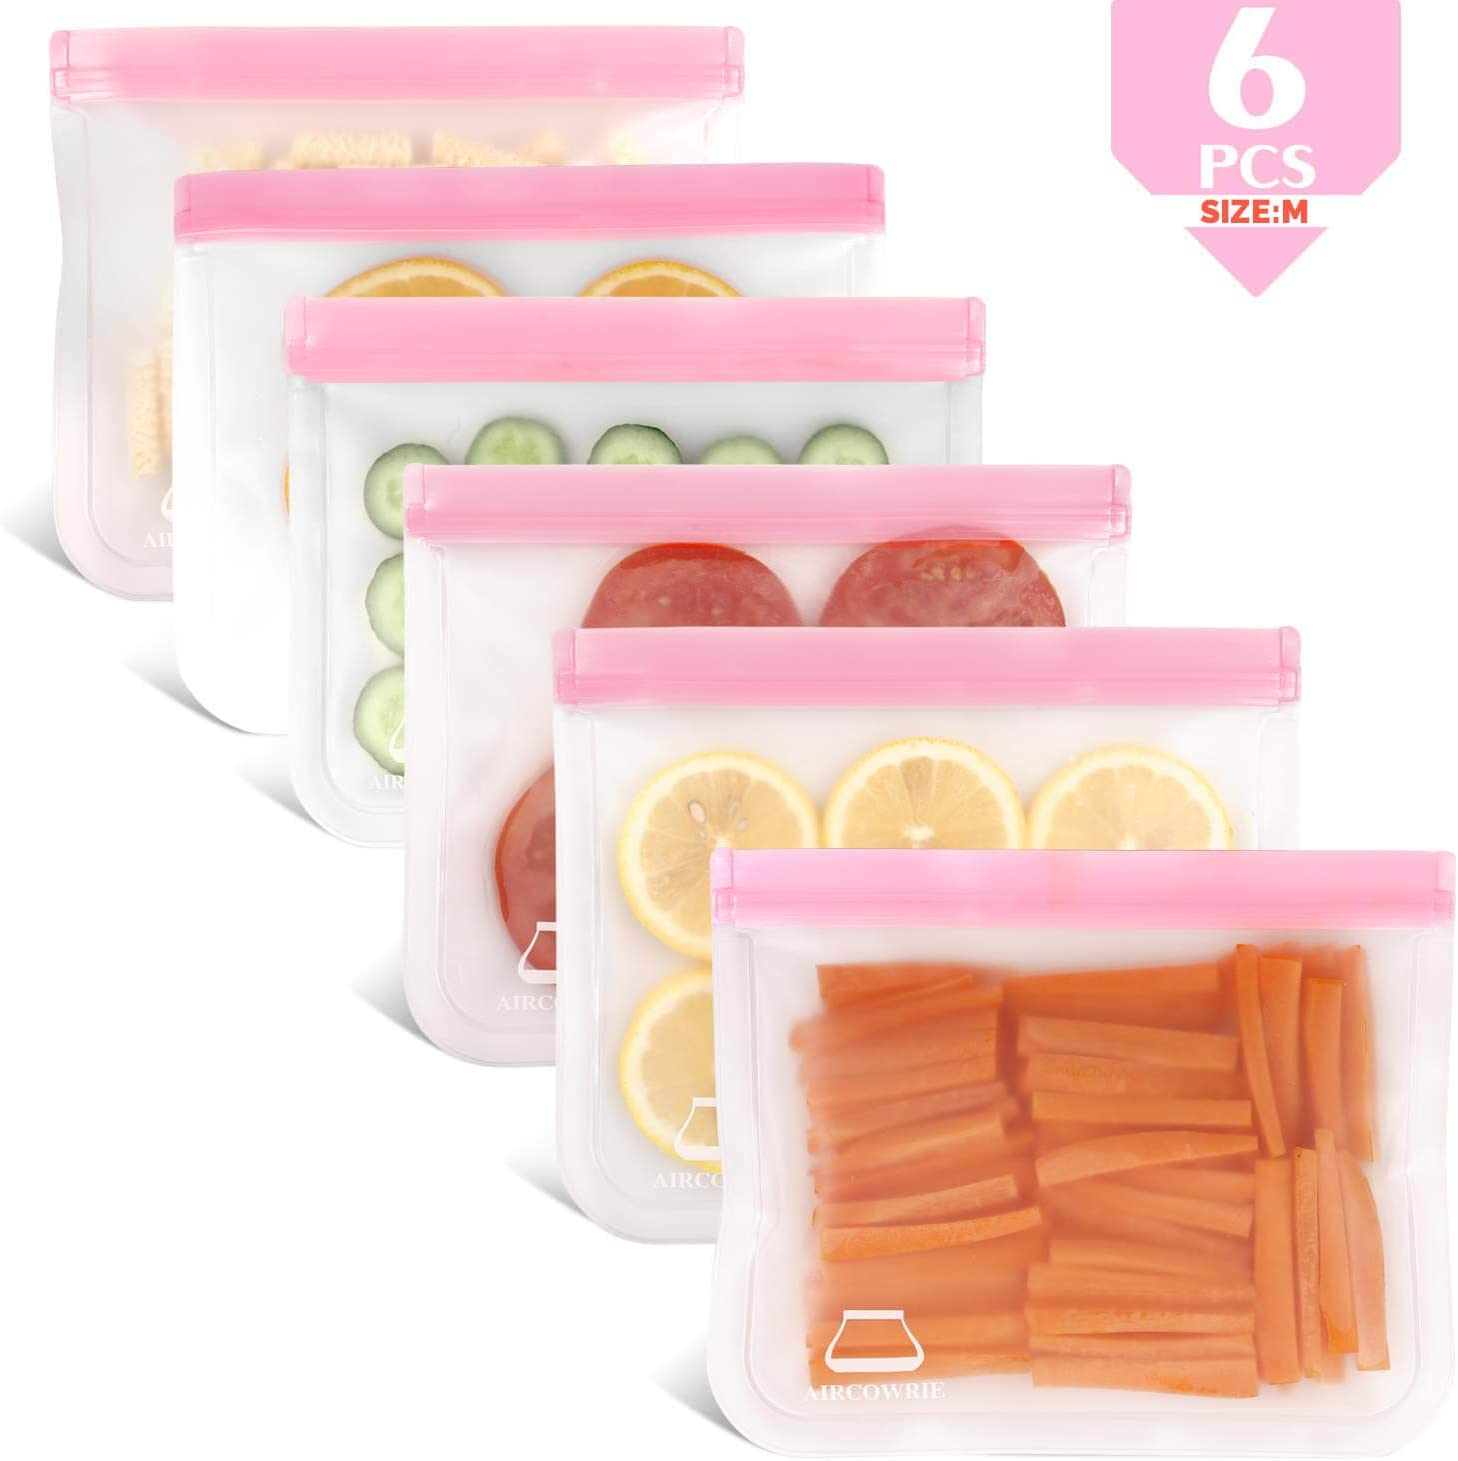 AIRCOWRIE Reusable Storage Bags - 6 Pack Reusable Sandwich Bags Leakproof PEVA Freezer Bags Thick Ziplock Lunch Bags for Food Snack Meat Fruit (Pink)